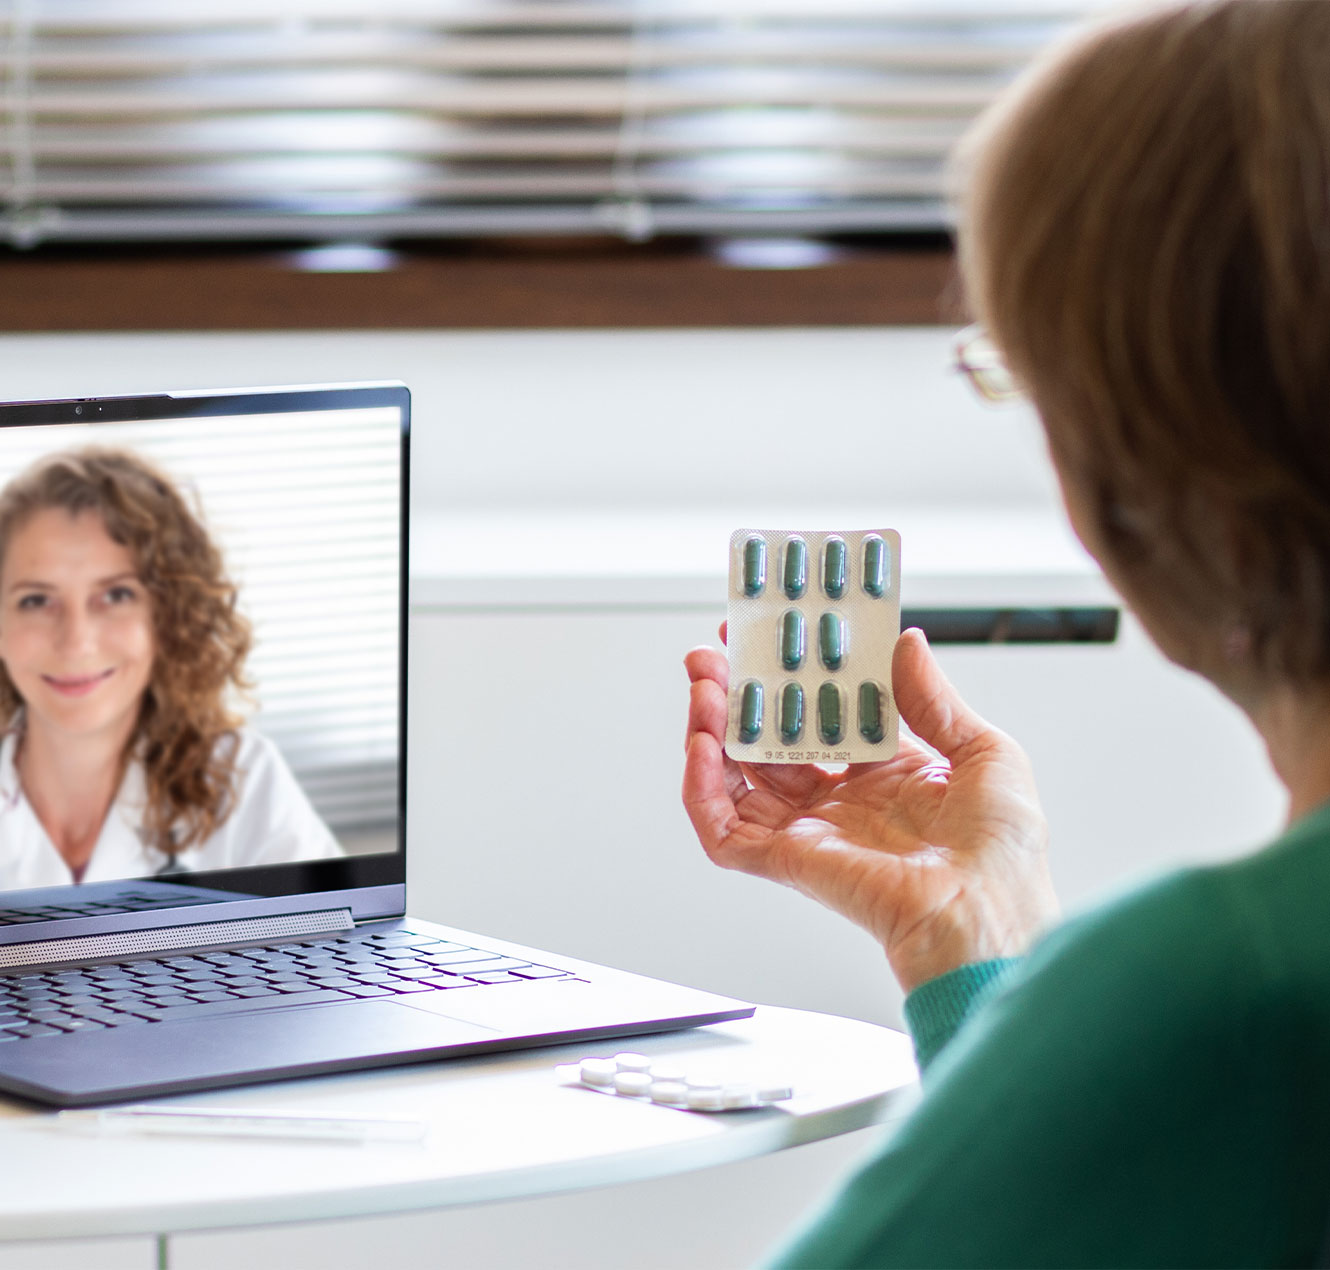 Patients speaking to doctor online to discuss about medication